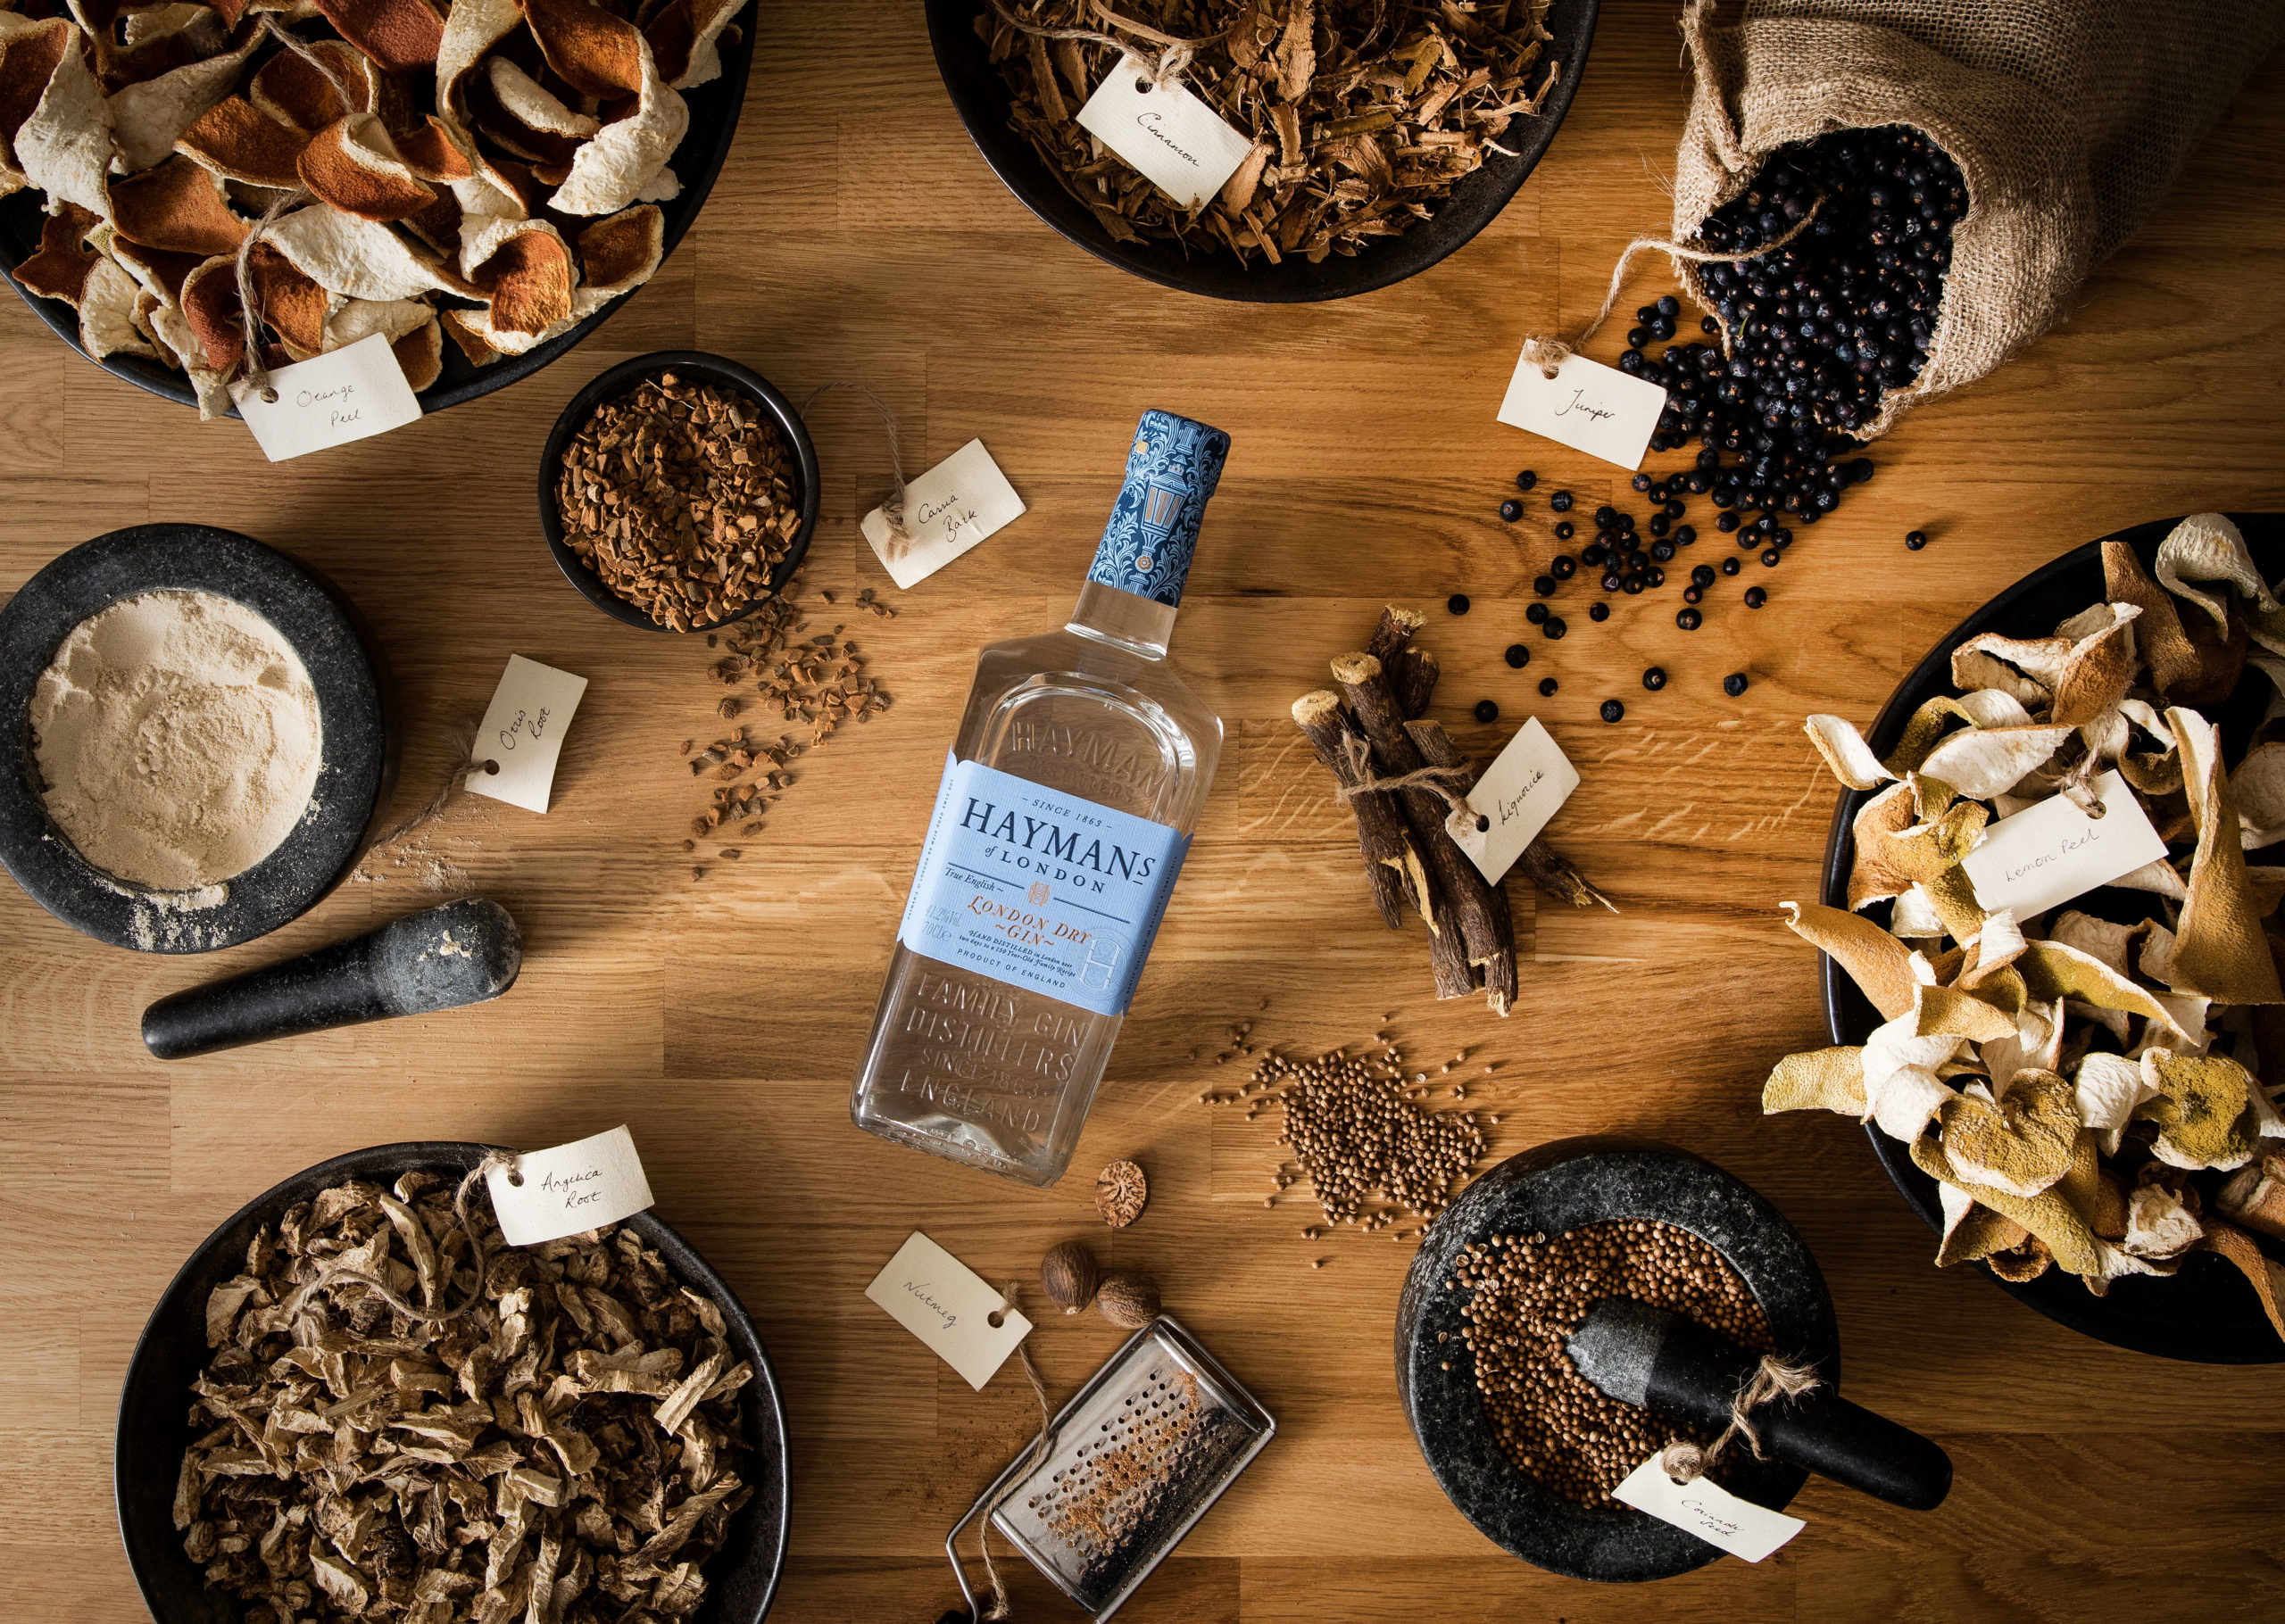 Hayman's London Dry Gin with botanicals